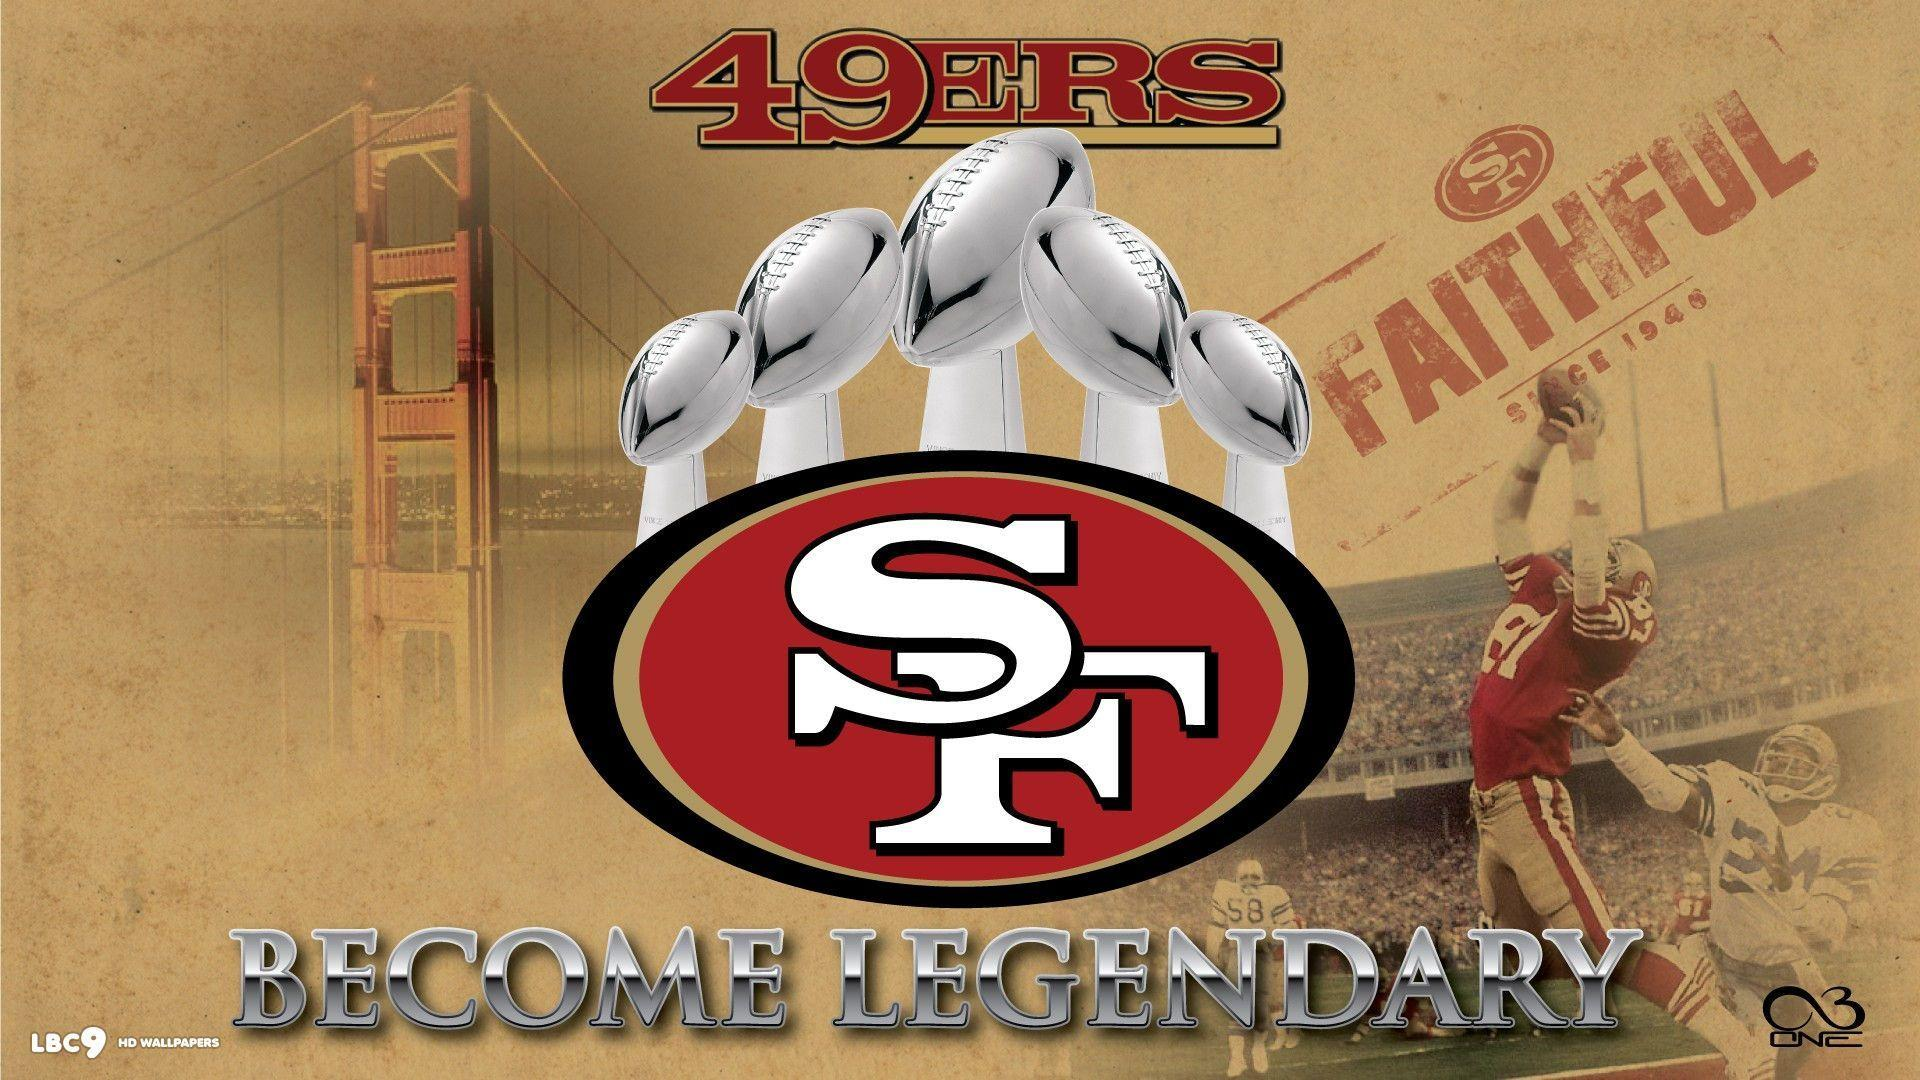 San francisco 49ers wallpapers 2015 wallpaper cave logo 49ers wallpapers wallpaperup 1080x1920px 49ers wallpaper voltagebd Image collections